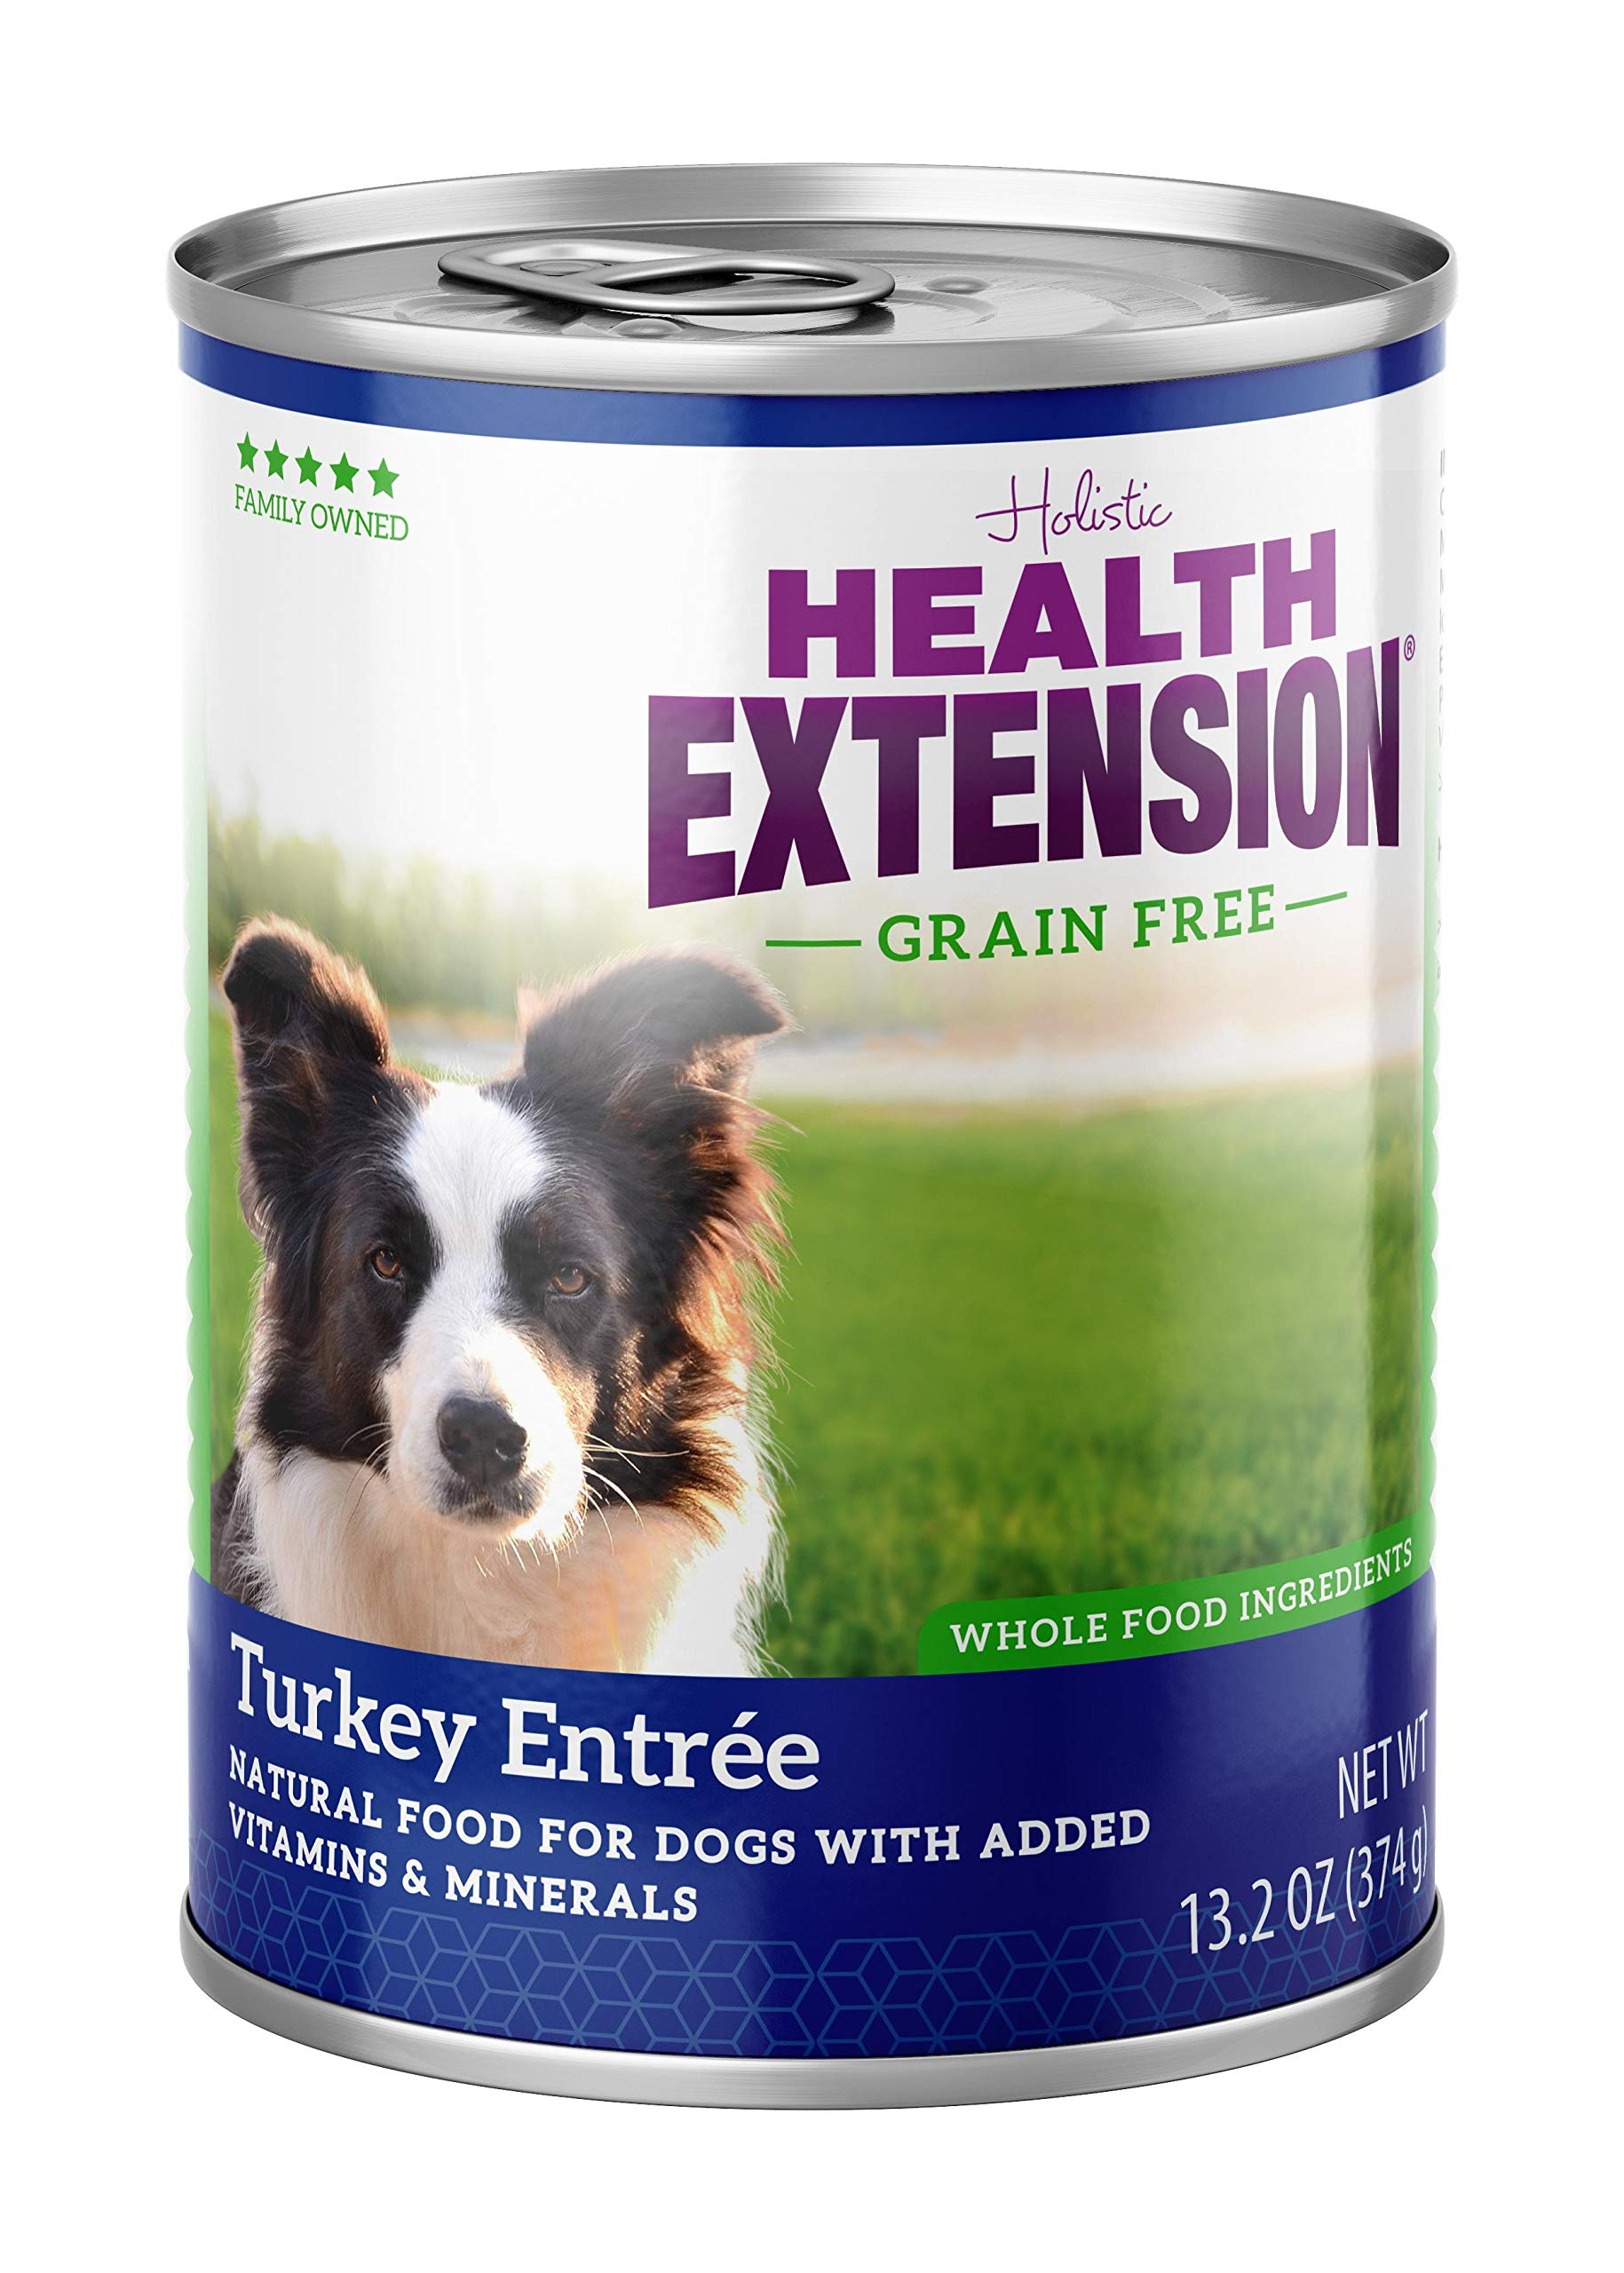 Health Extension Grain Free Turkey Entree 13.2-ounces, Case 12